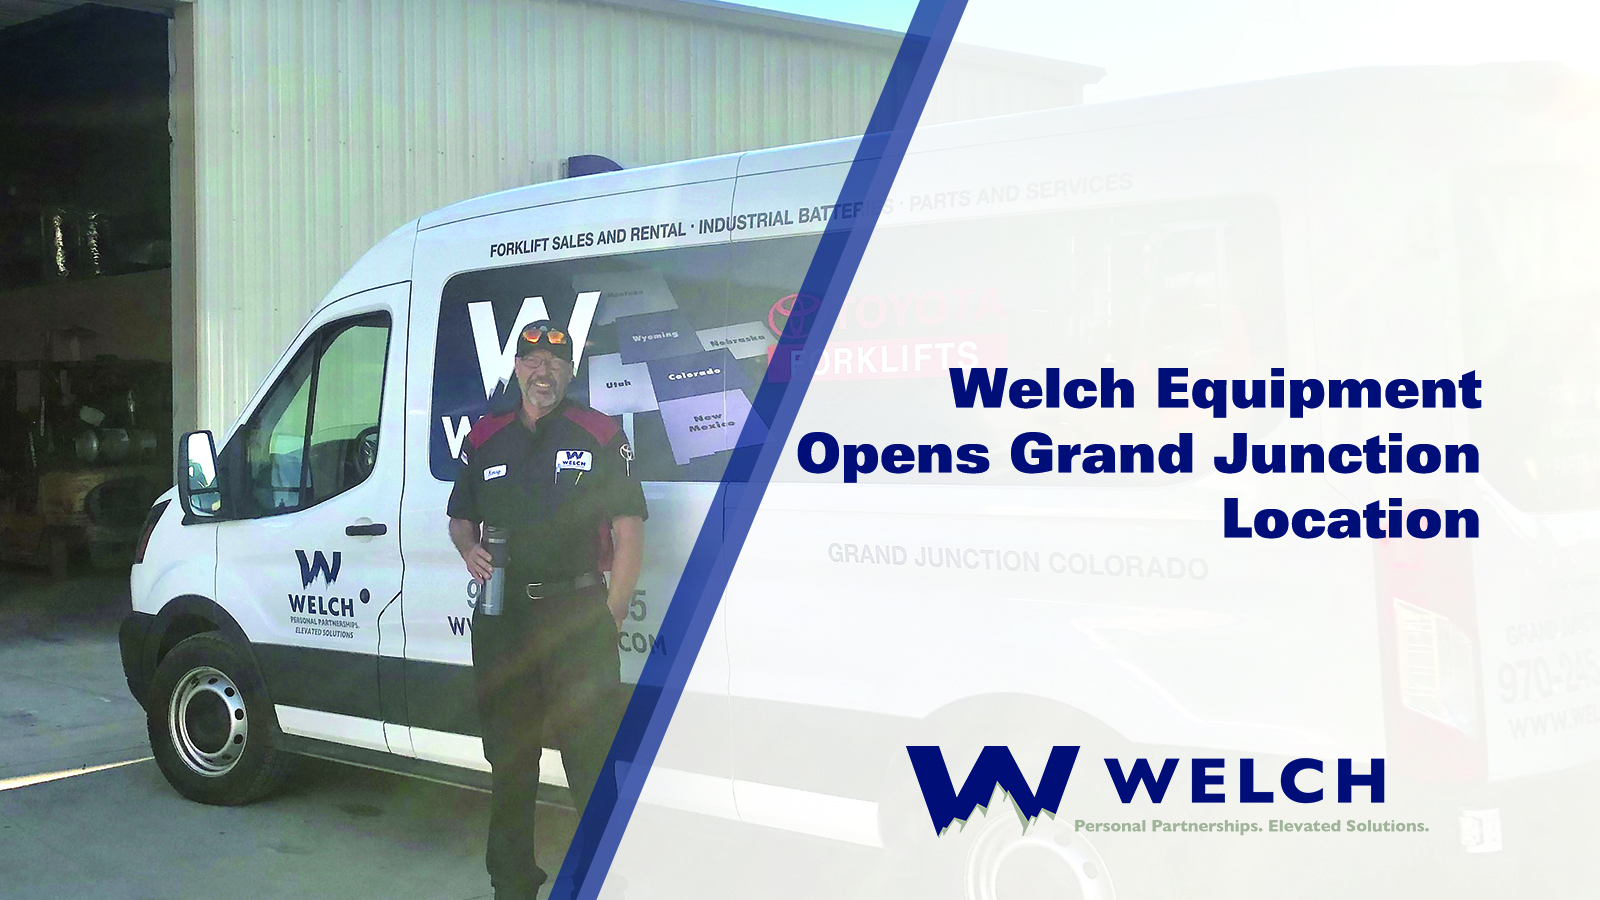 welch equipment grand junction